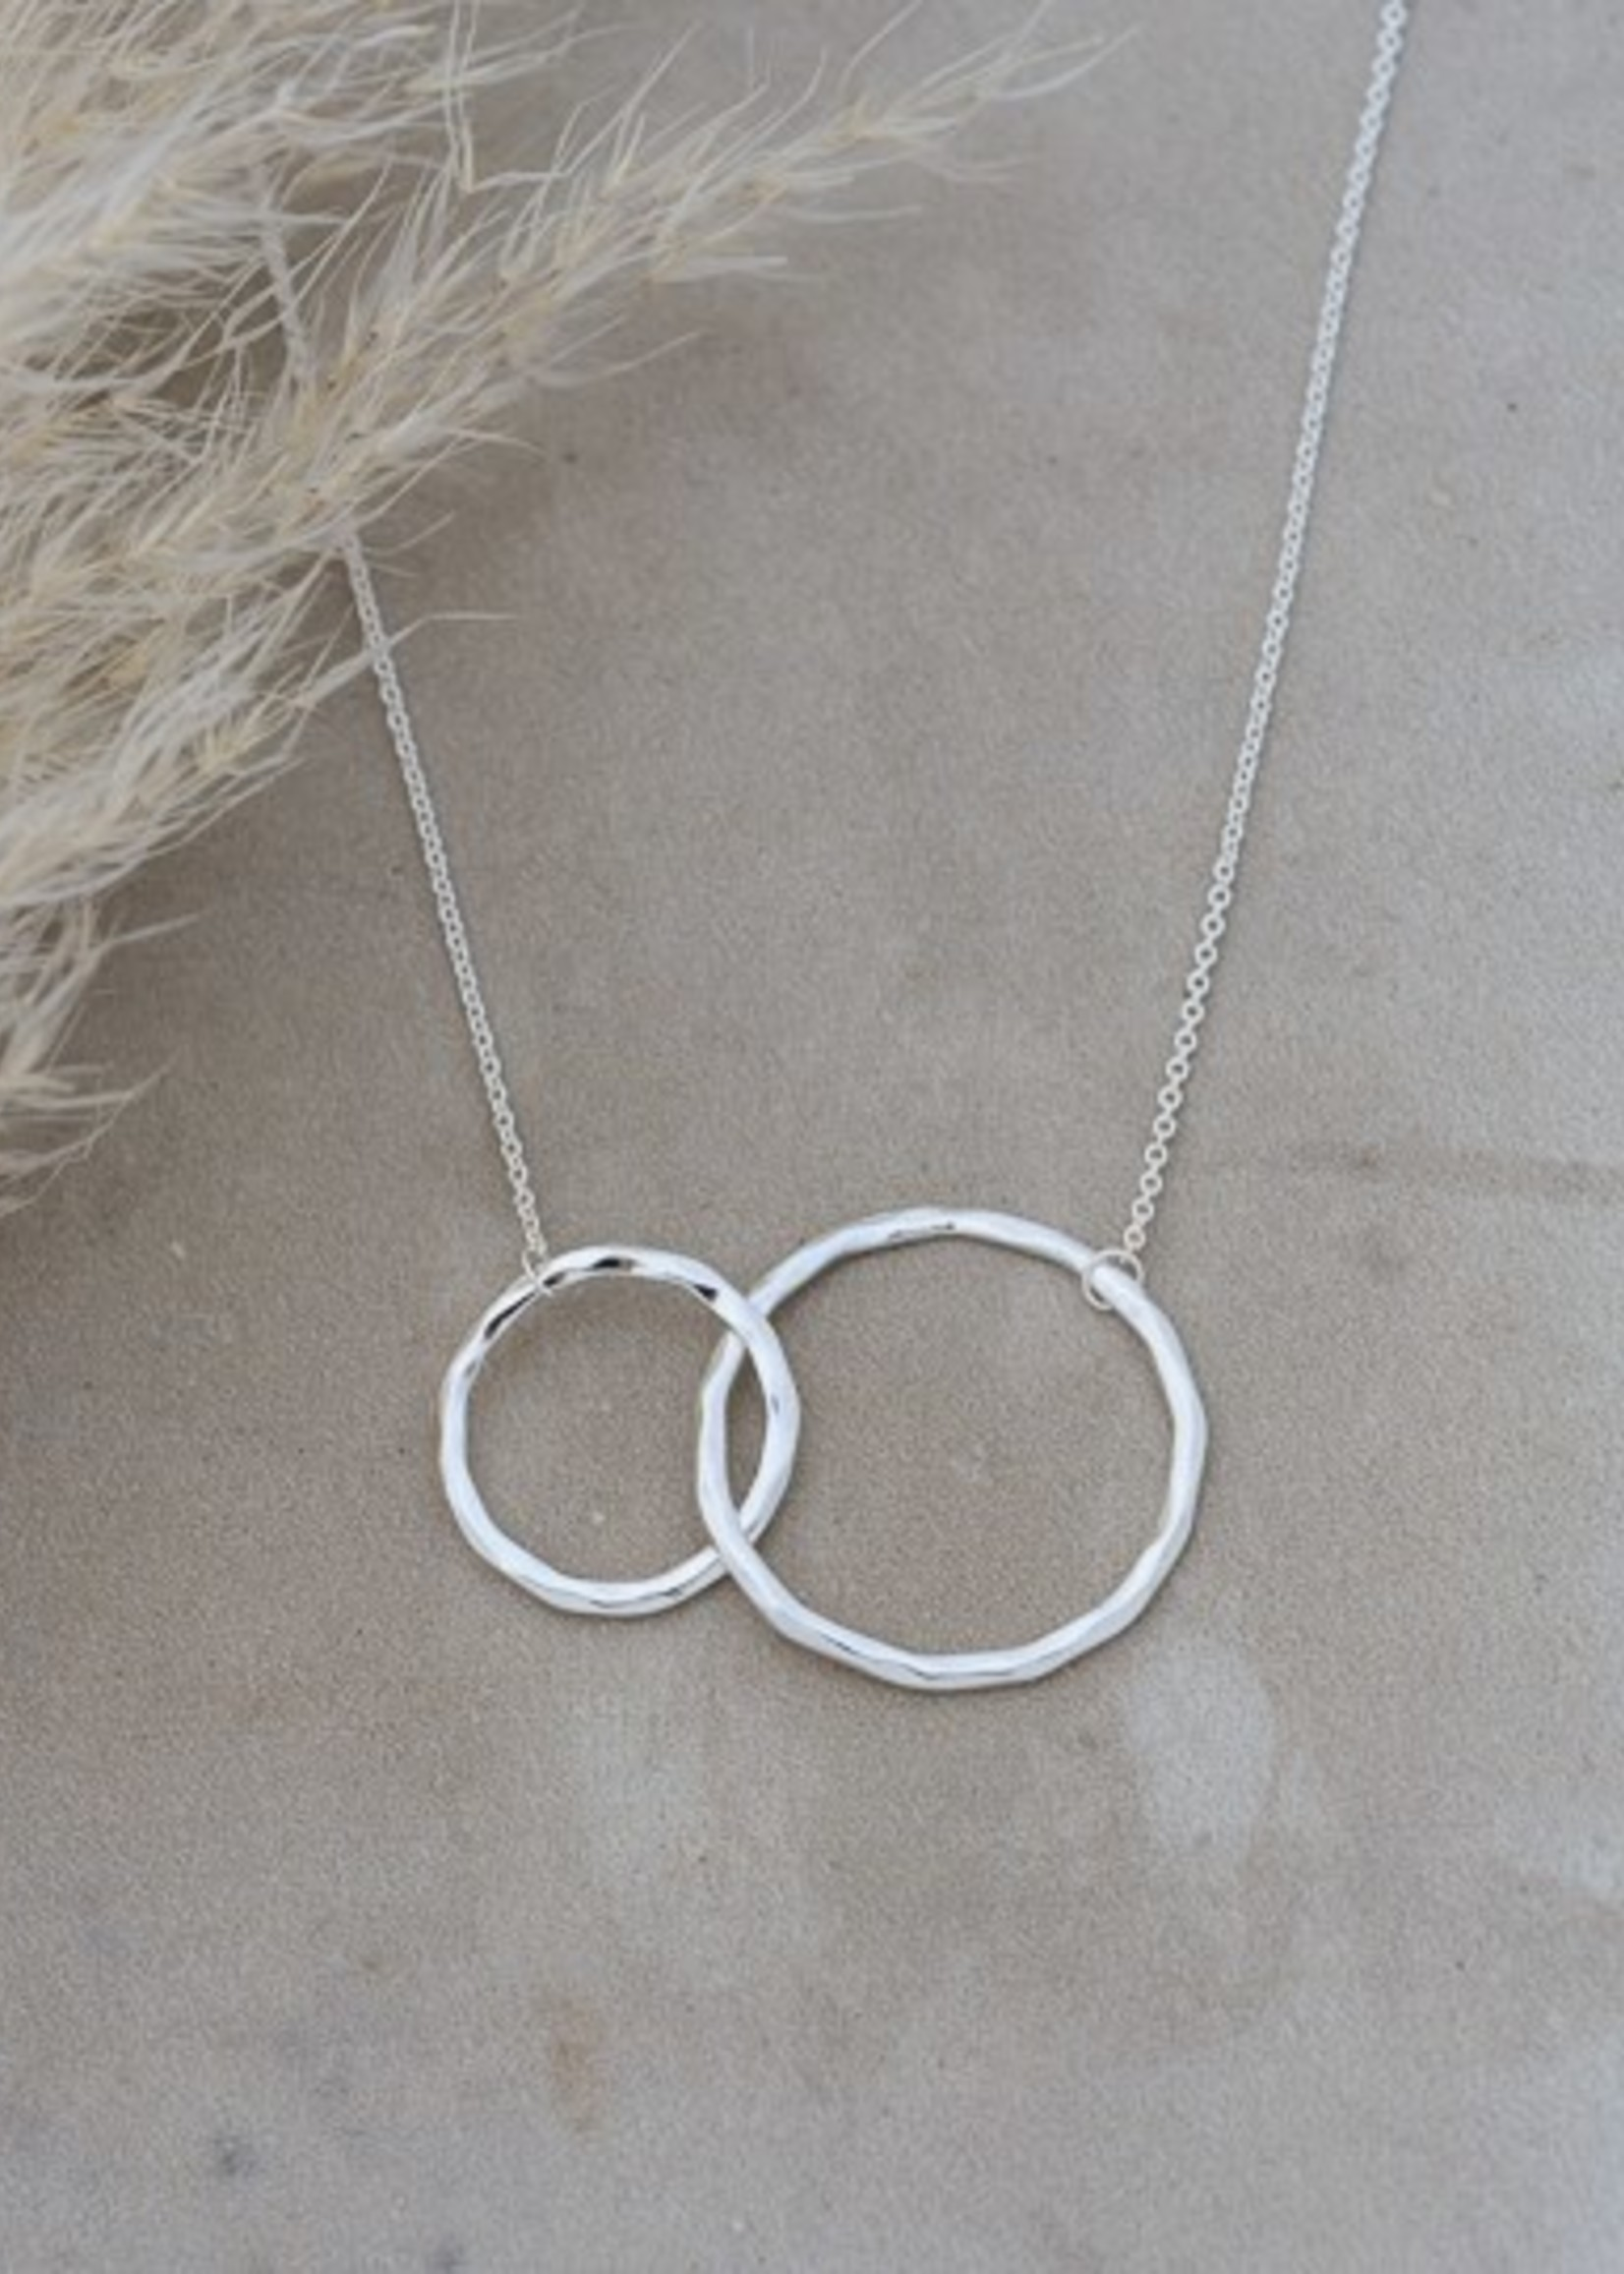 Glee Jewelry Sister Necklace Silver